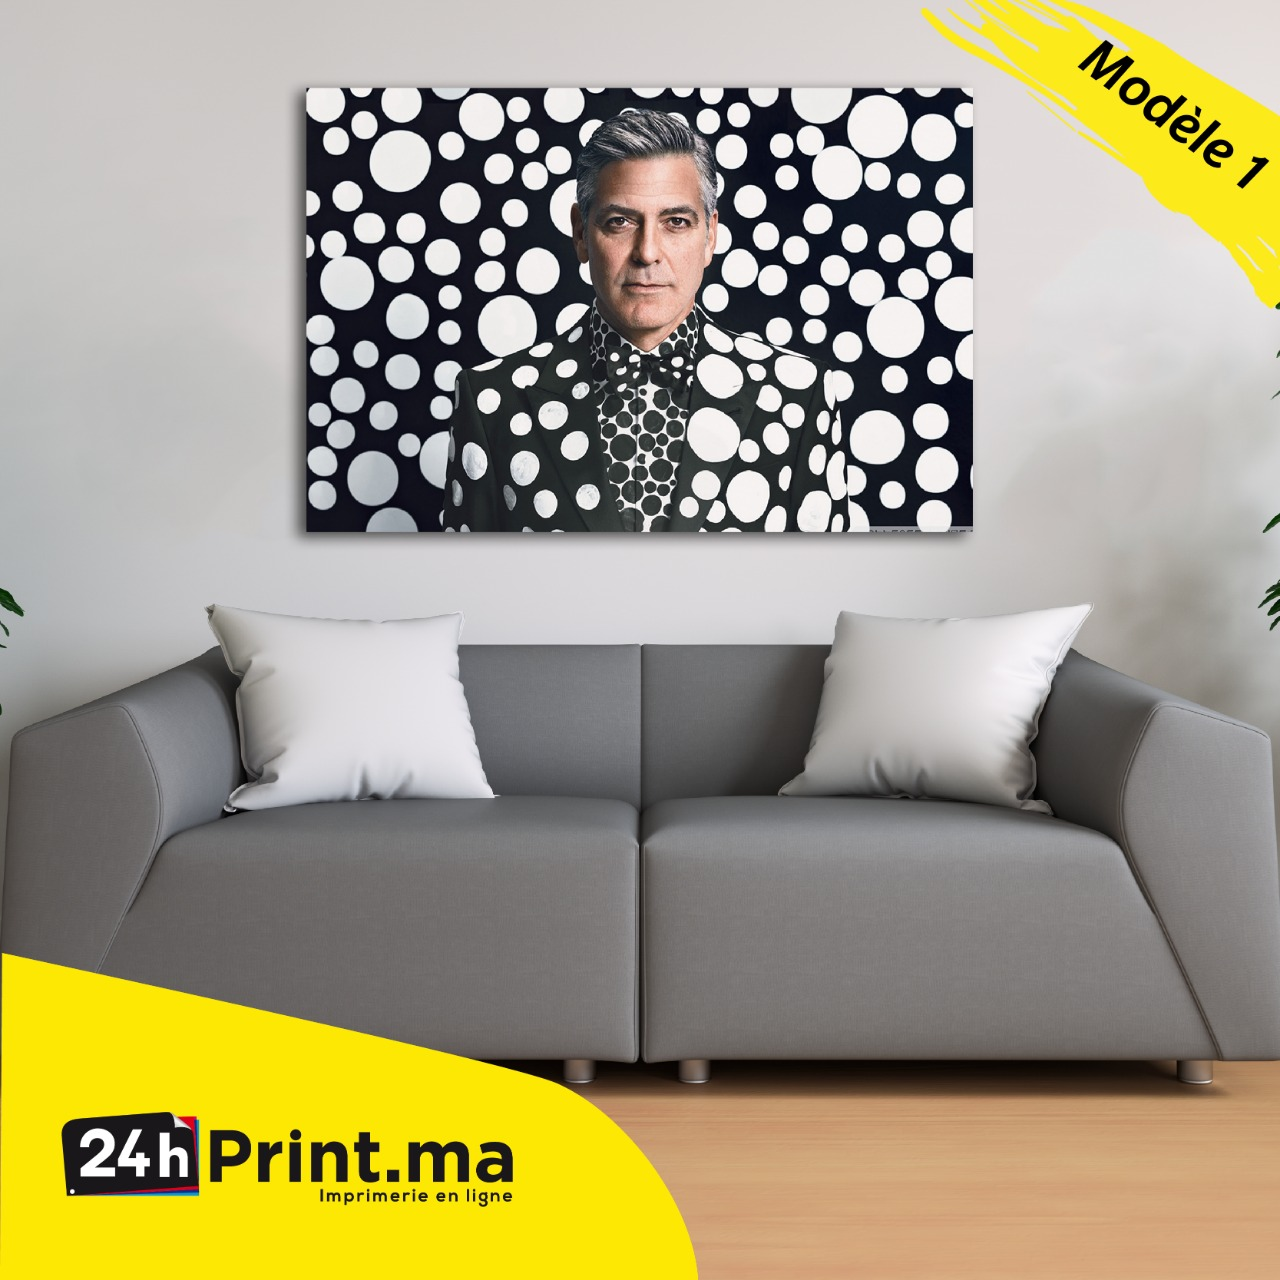 https://www.24hprint.ma/images/products_gallery_images/130.jpeg